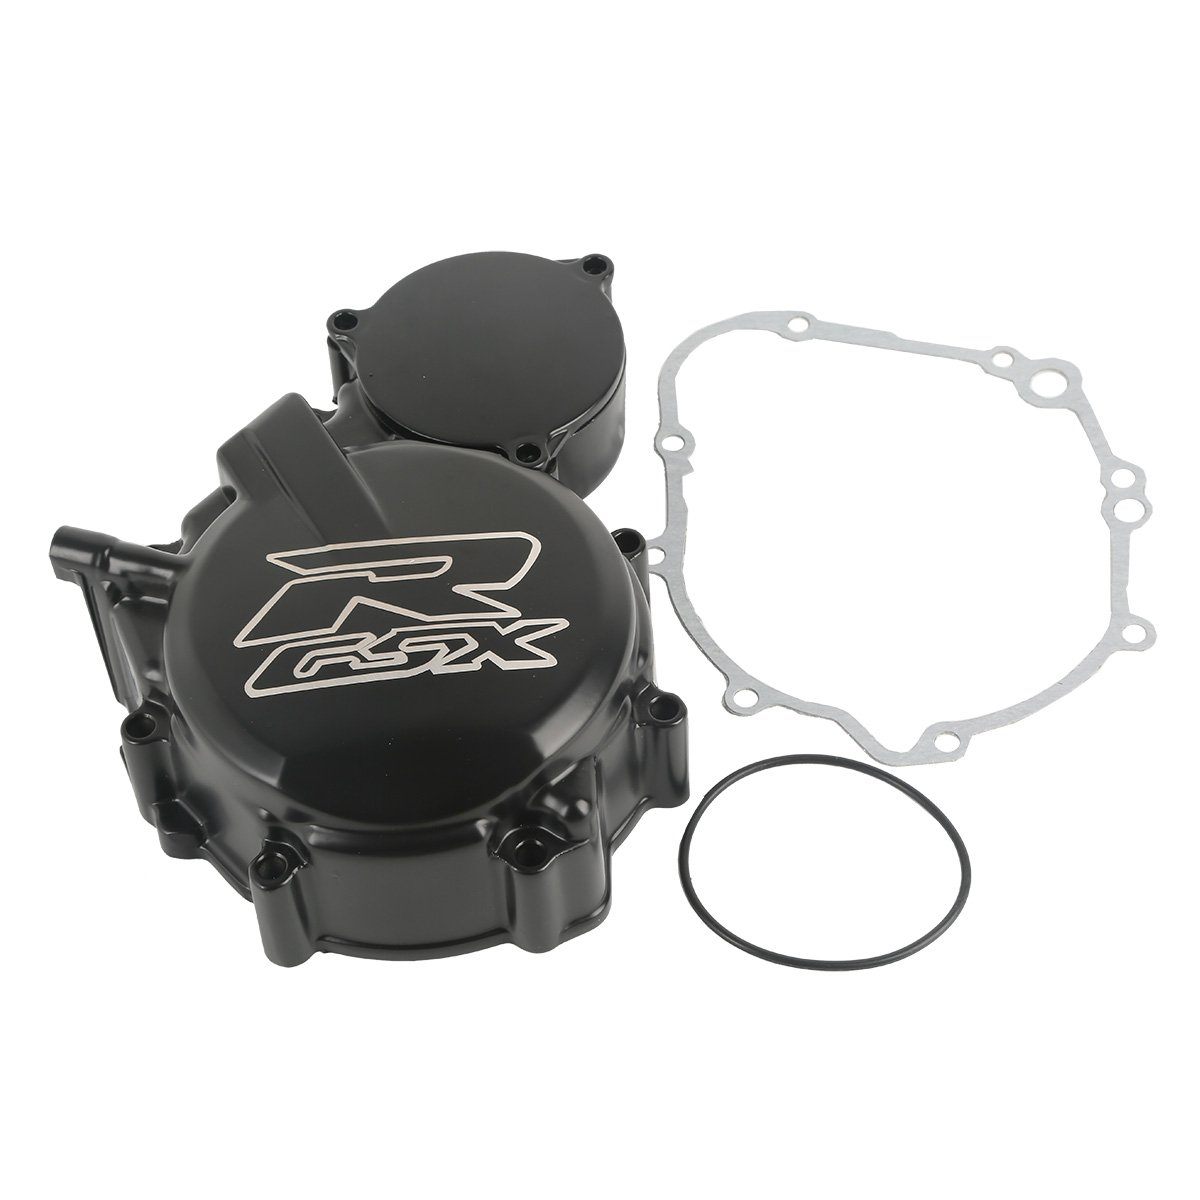 Black Engine Stator Crankcase Cover For Suzuki GSXR600 GSXR750 2006-2016 2014 2015 (5-7 Days Ships from the CA, US)